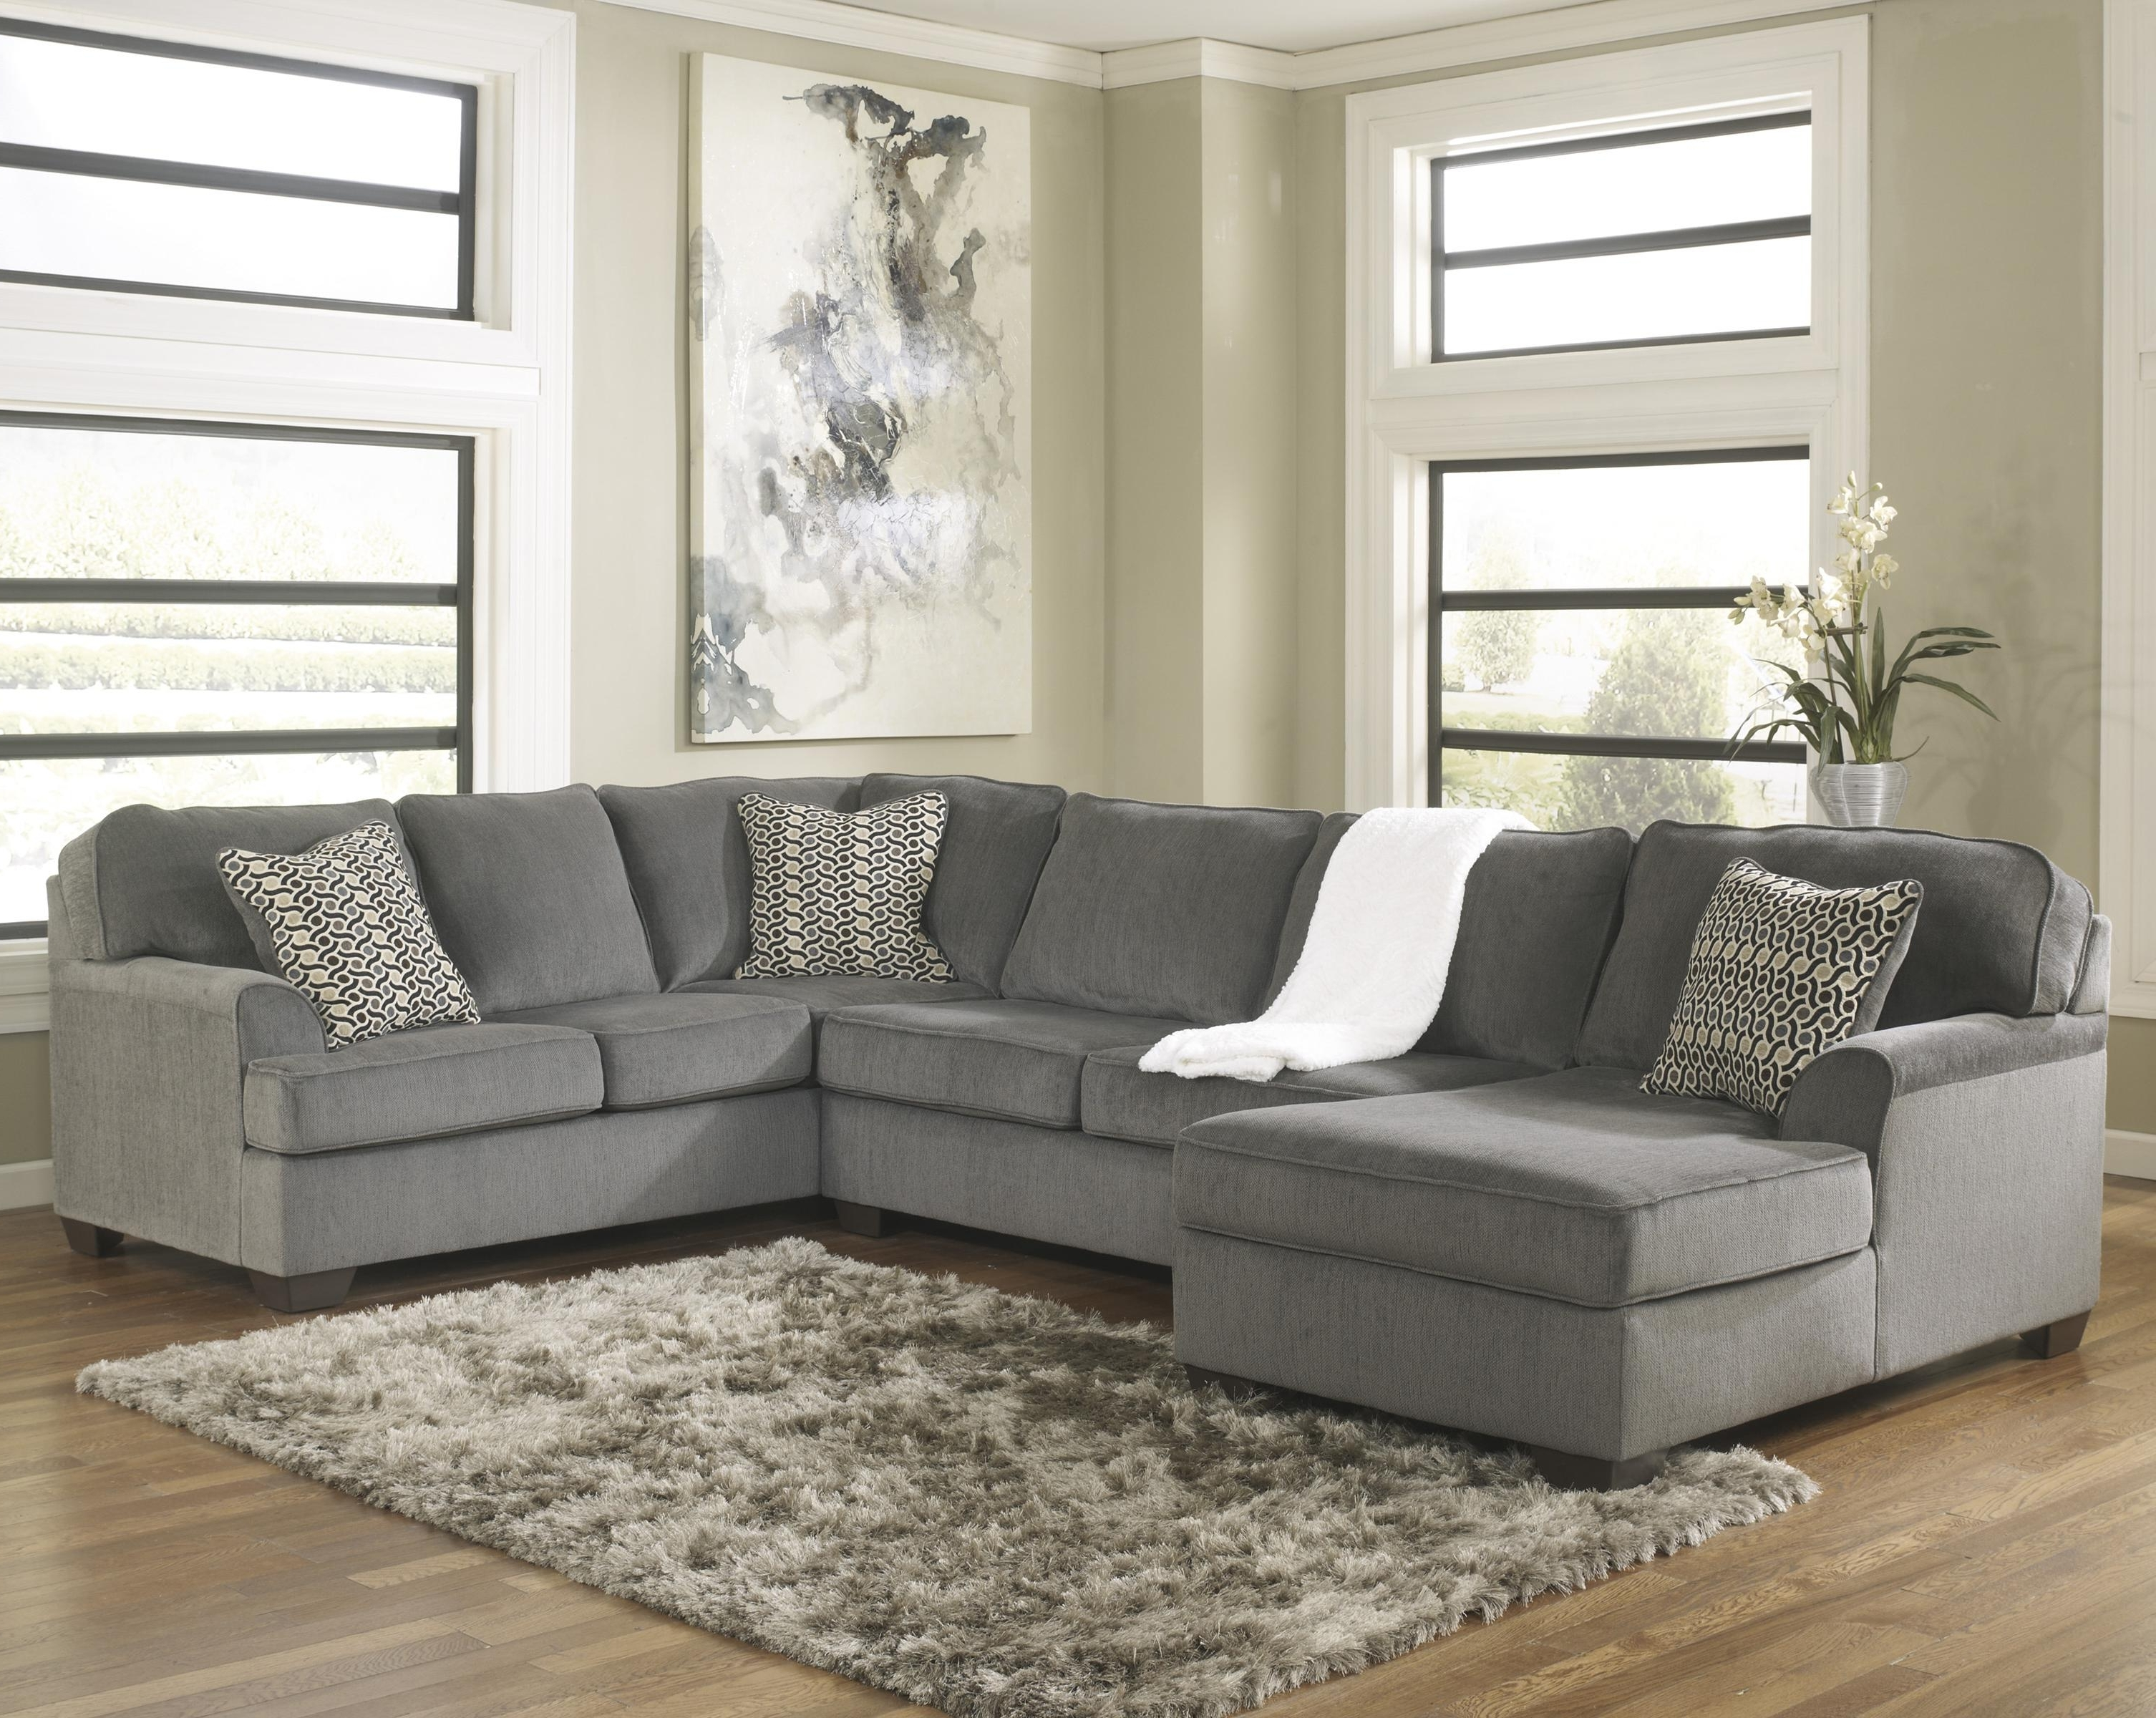 Ashley Furniture Sectional Sofas – Mforum Pertaining To Fashionable 10x8 Sectional Sofas (View 19 of 20)